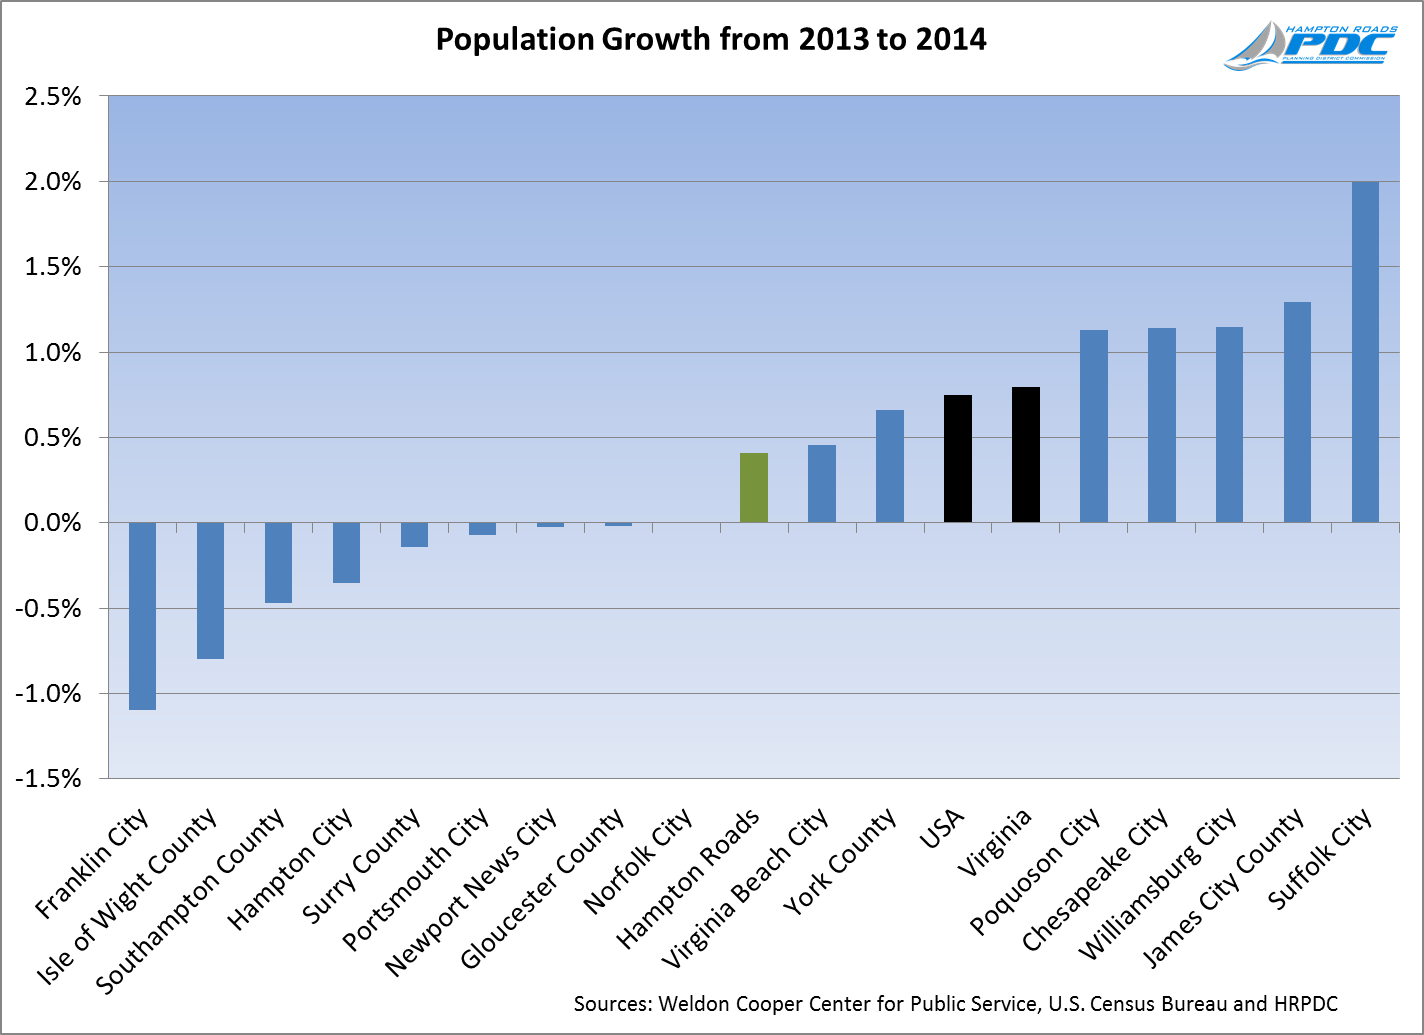 Population Growth from 2013 to 2014